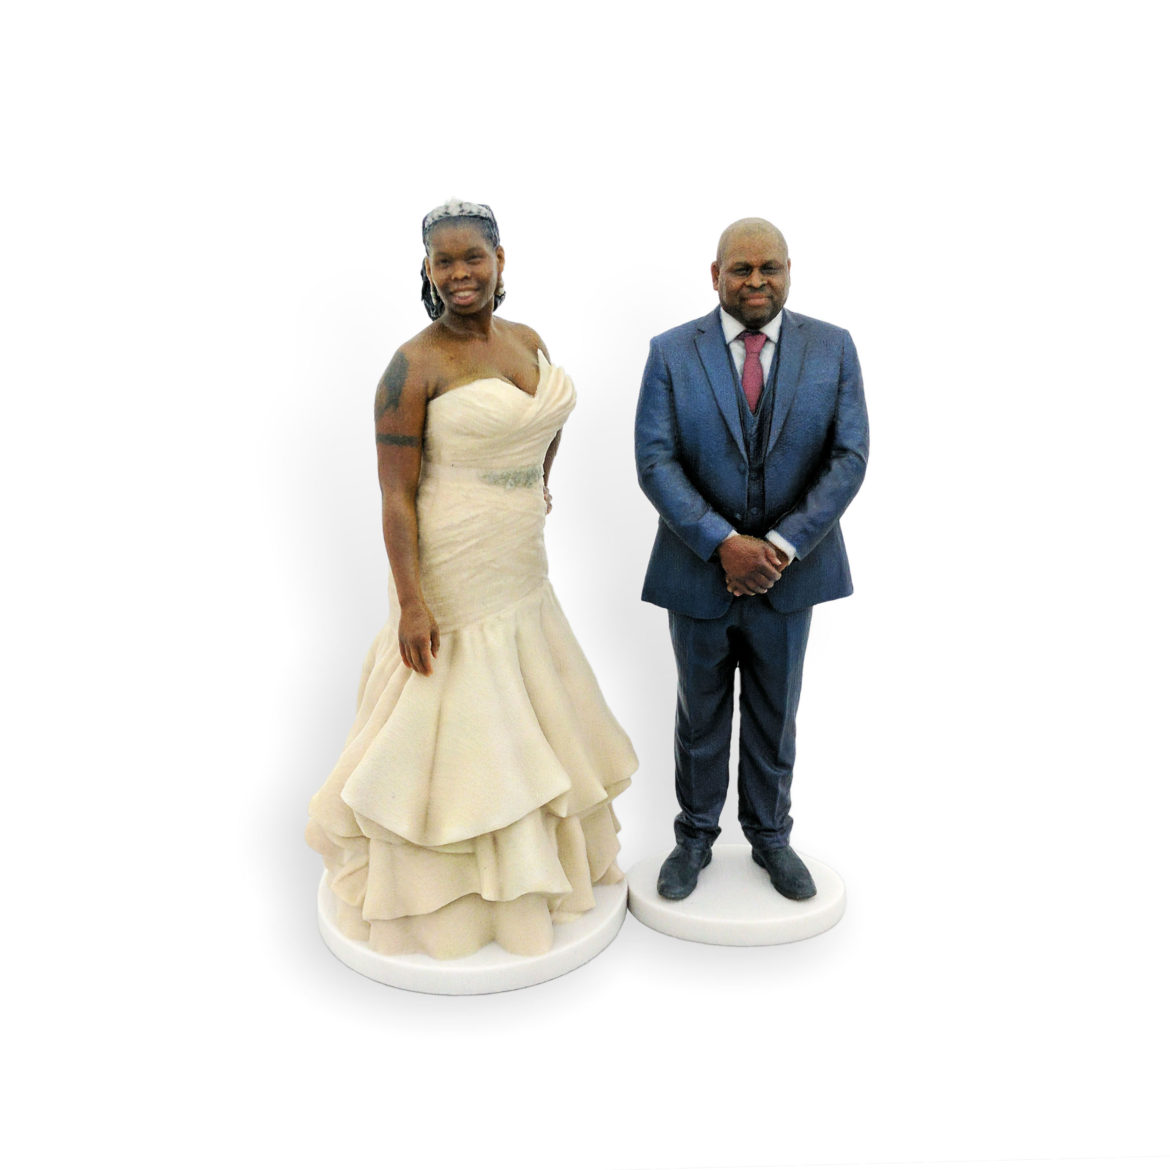 my3Dtwin, 3D Printed Custom Wedding Cake Topper of a Couple